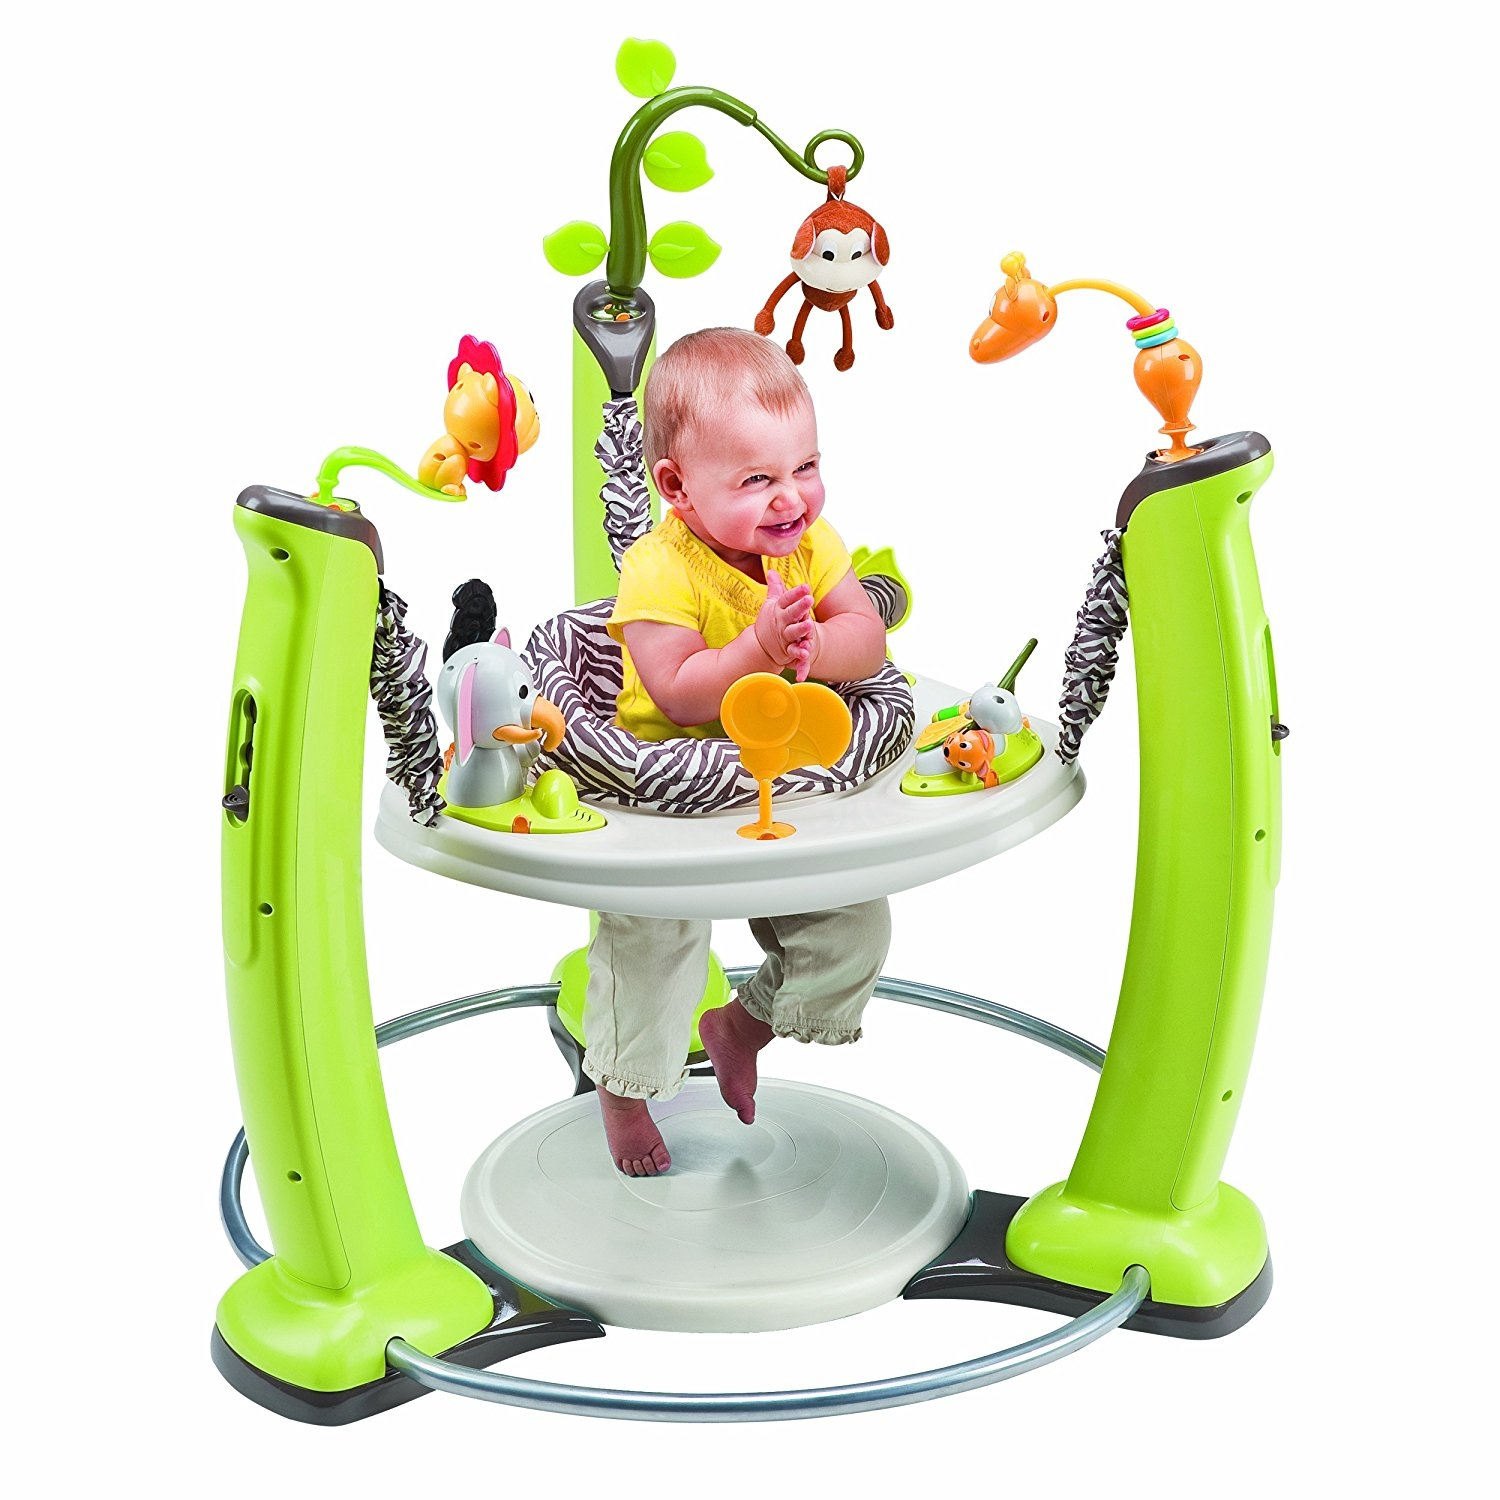 84c957a25a5e Evenflo ExerSaucer Jump and Learn Jumper